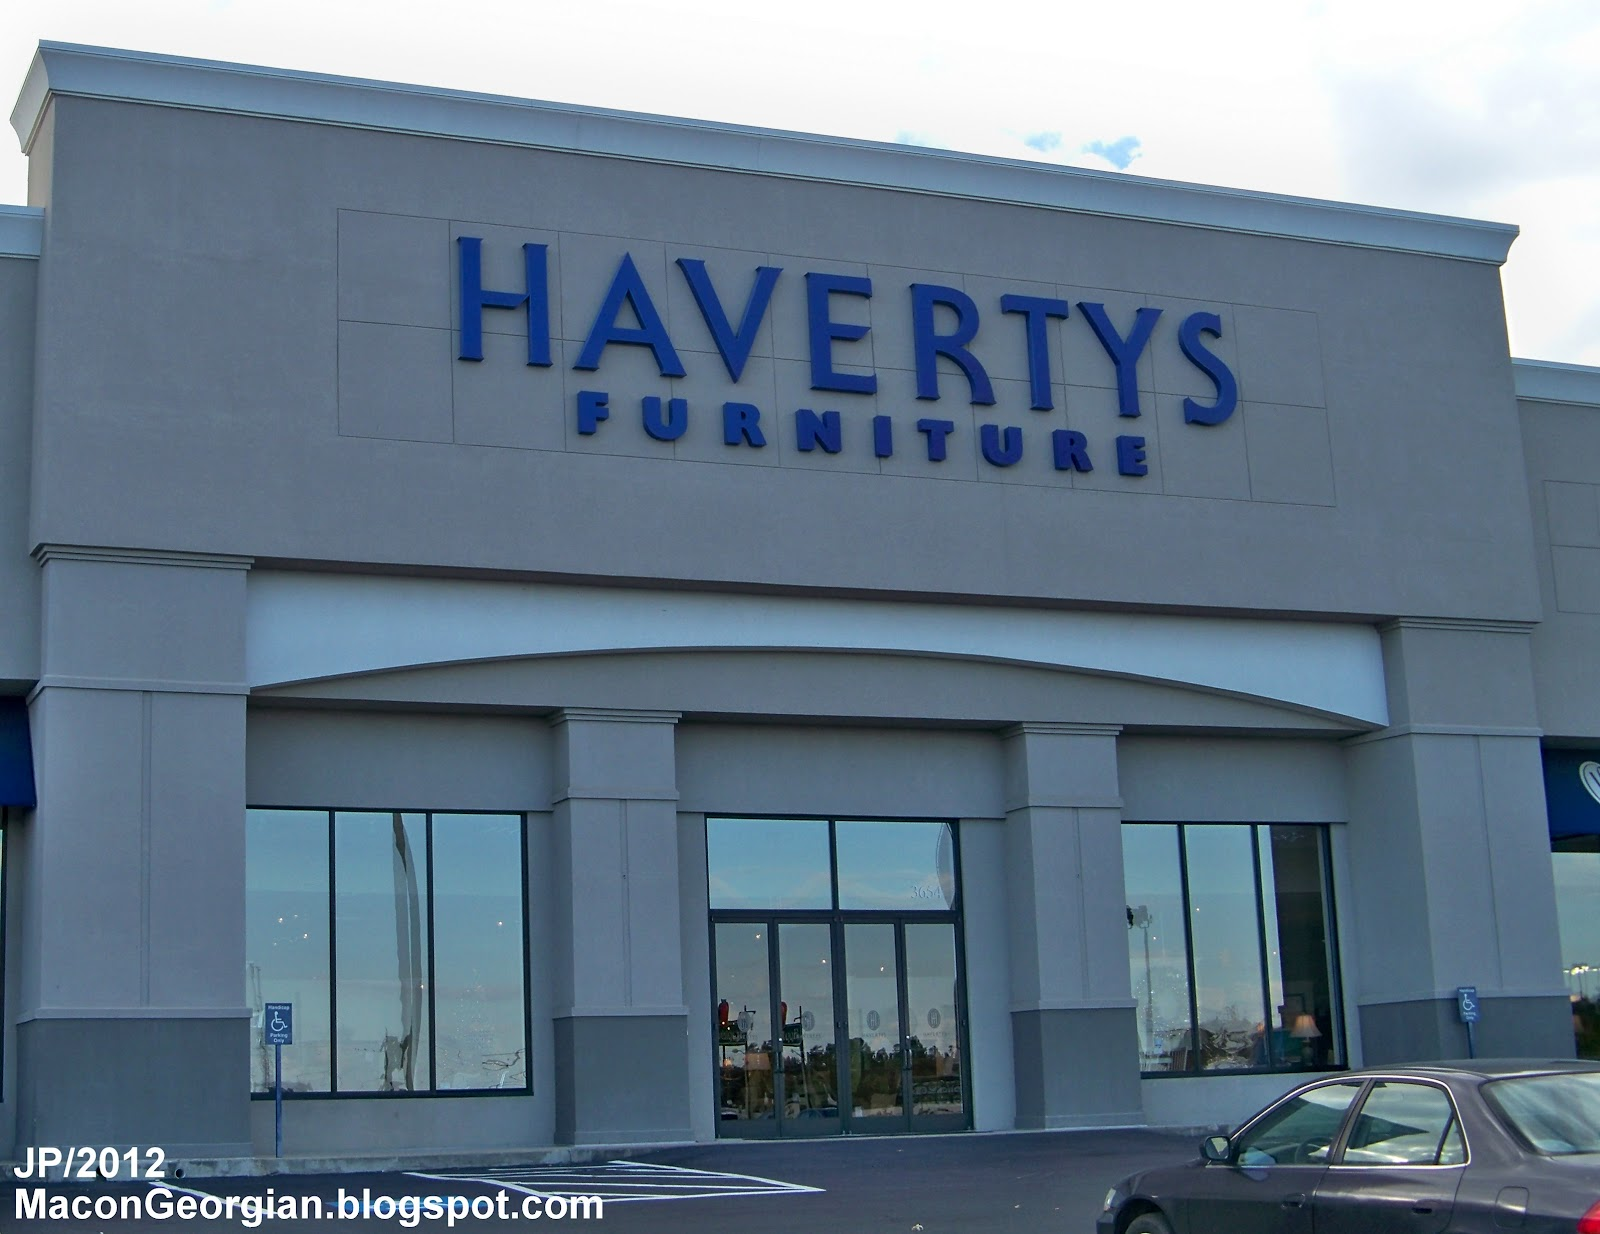 Havertys Furniture Macon Ga Eisenhower Parkway Showroom Bibb County Georgia